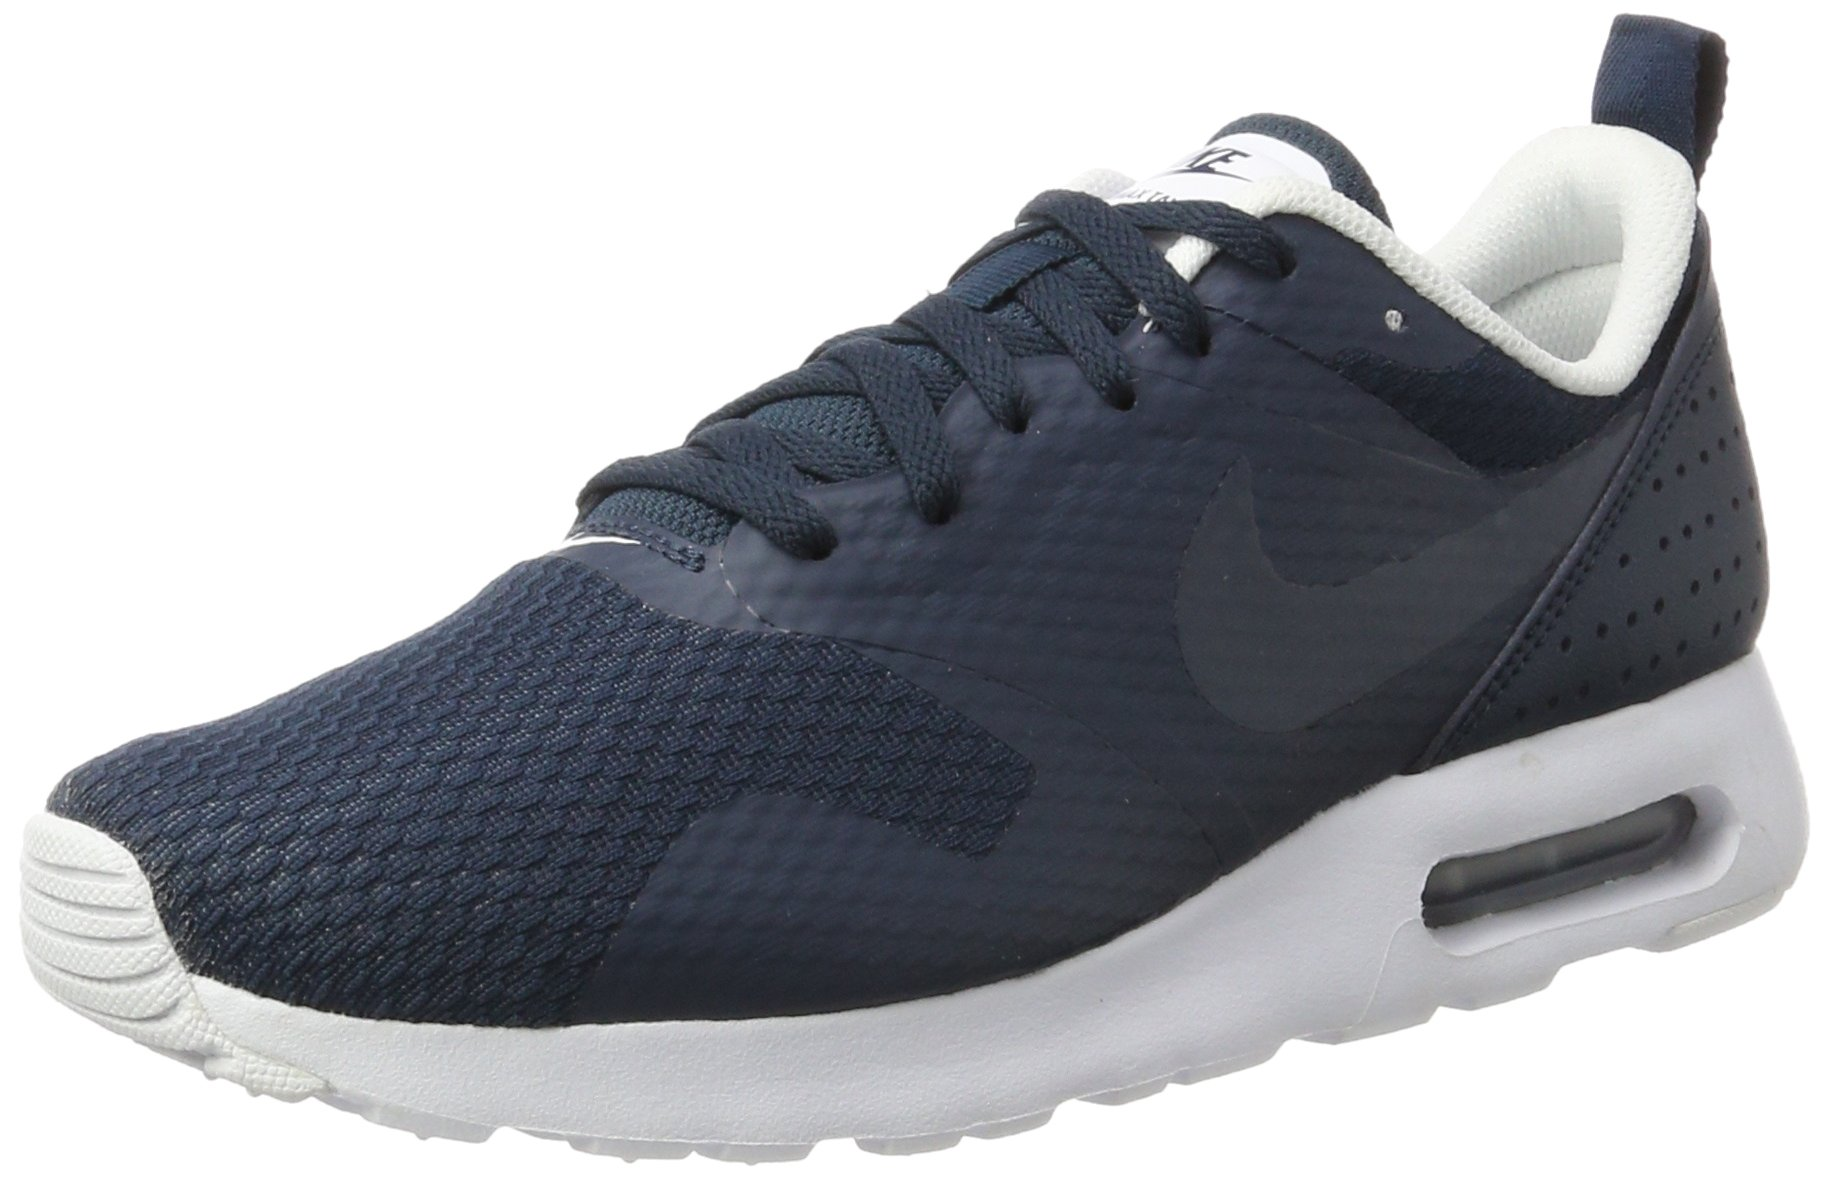 new product c2b23 26905 Galleon - NIKE Men s Air Max Tavas Trainers, Blue (Armory Navy Armory Navy  White), 10.5 UK 45.5 EU